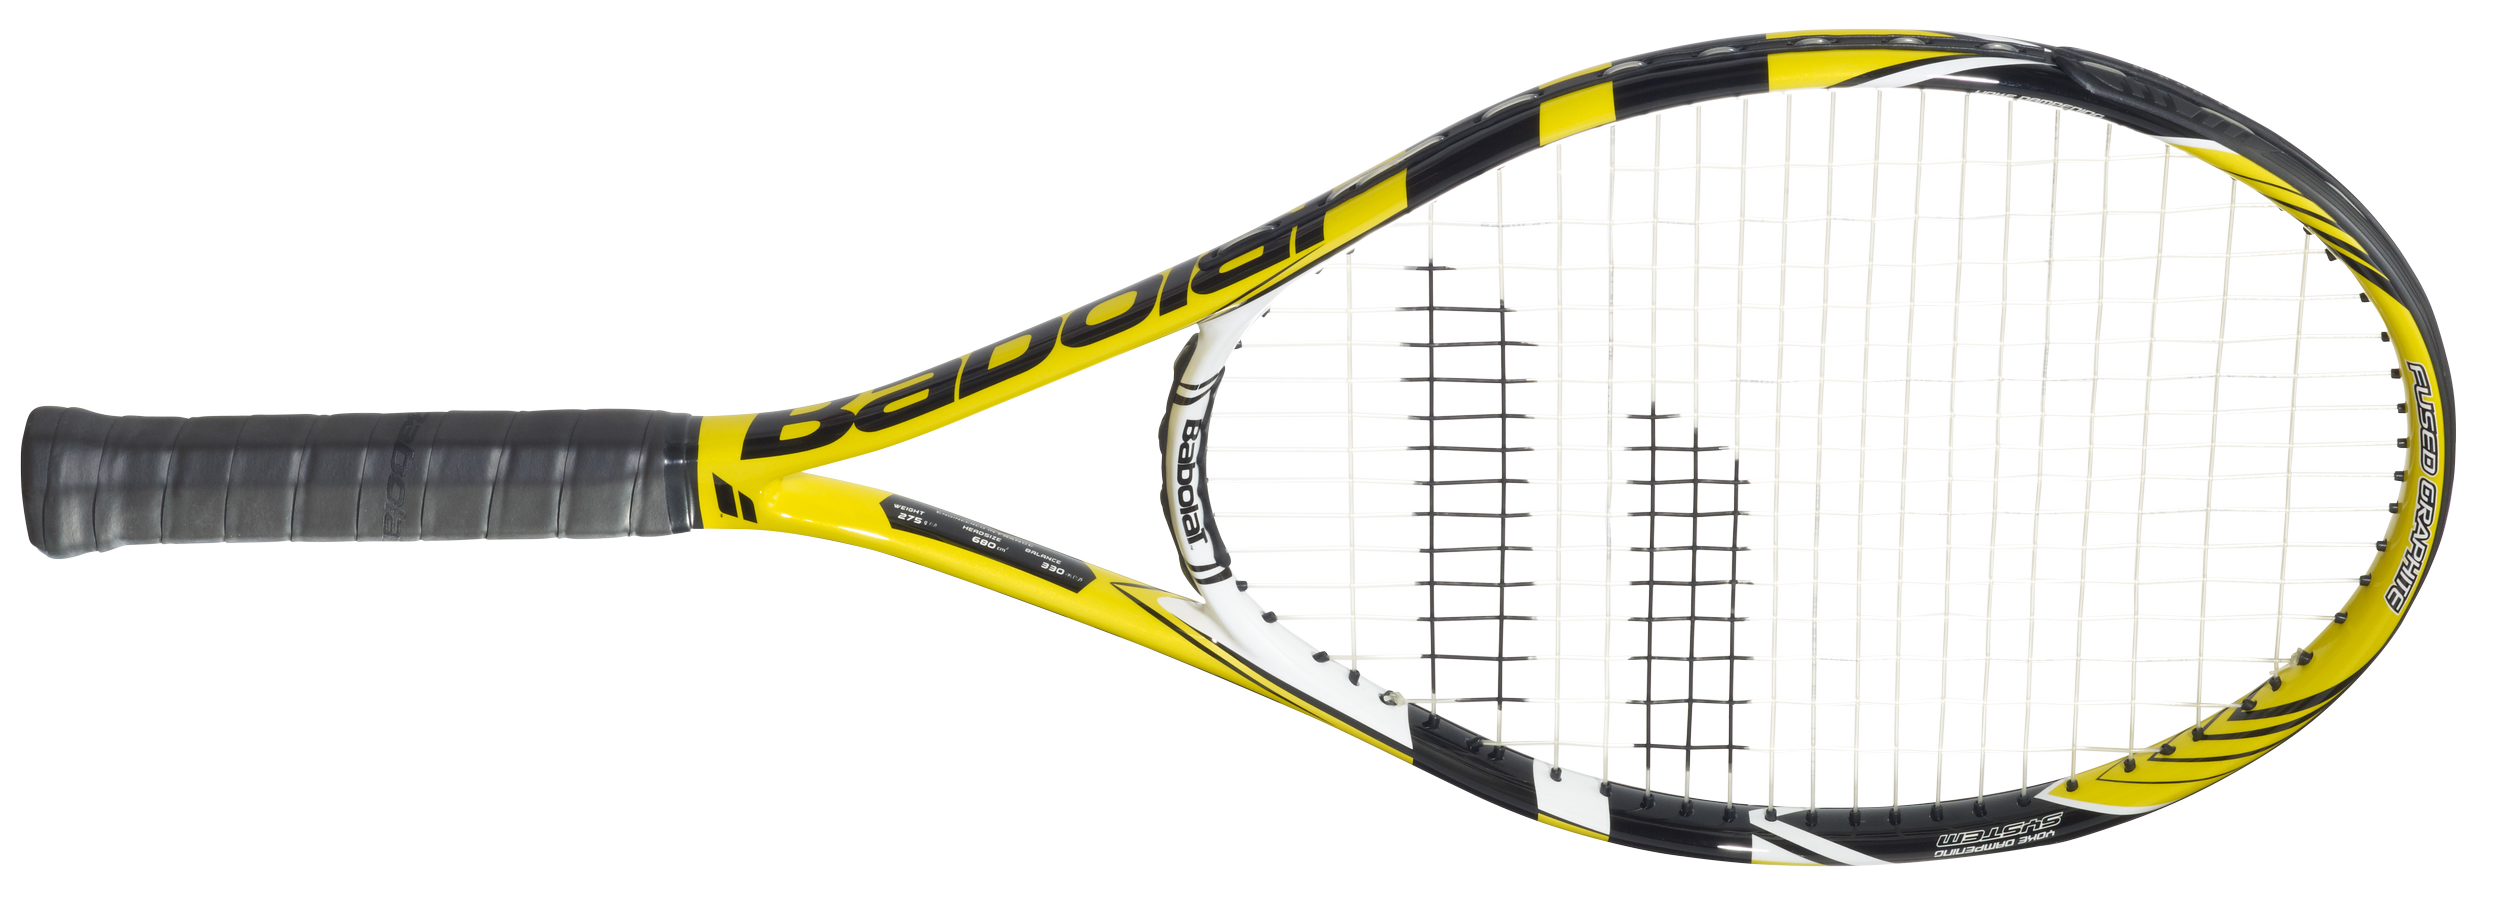 Racket clipart tennis team. Png images free download